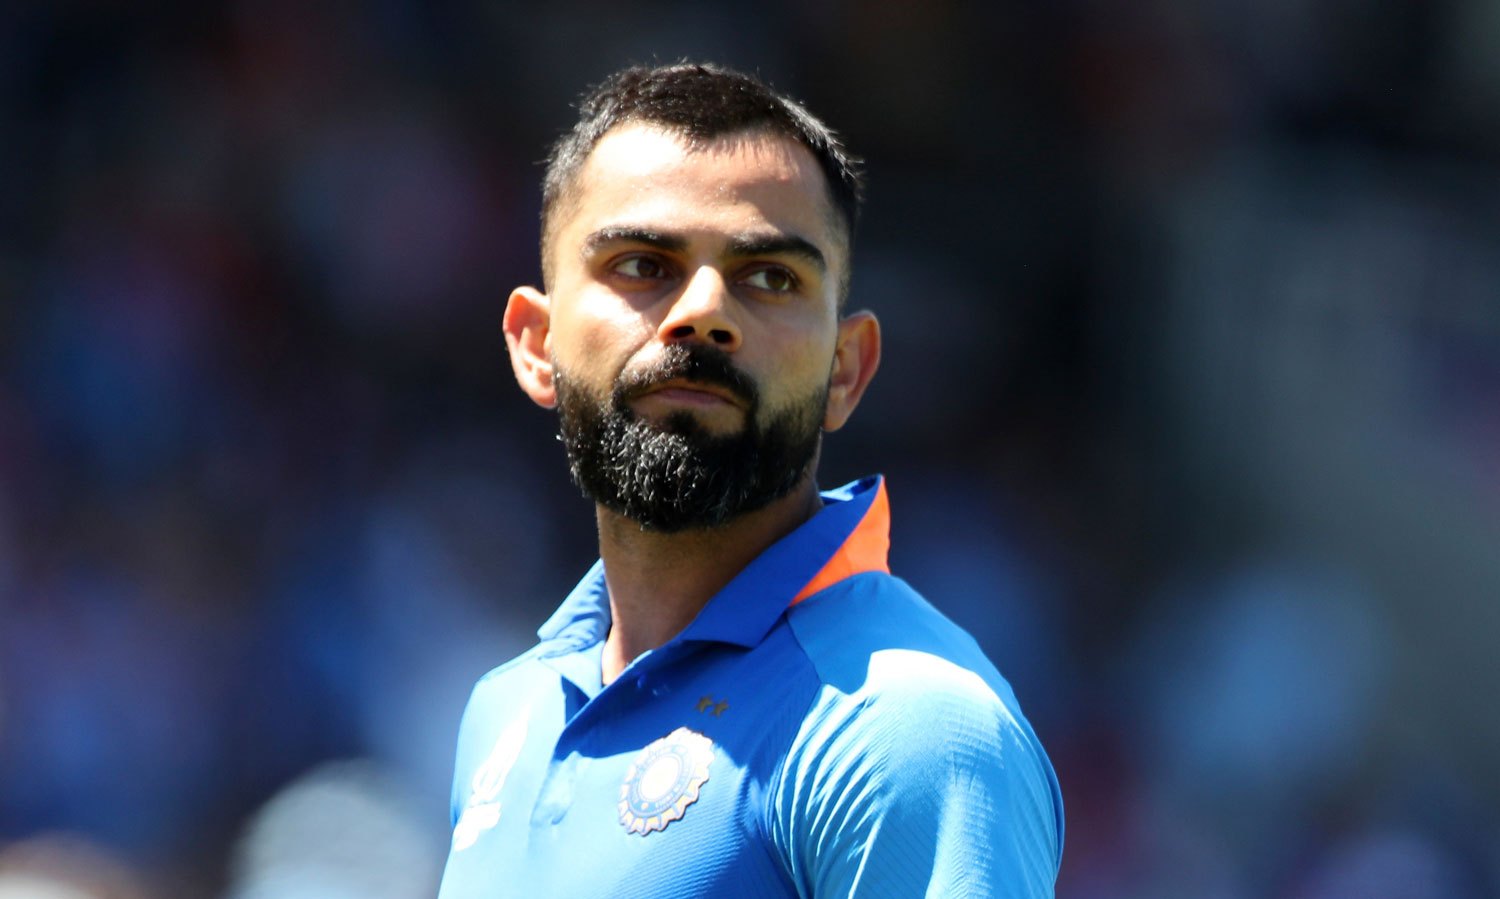 On Wednesday, in Visakhapatnam, West Indies may add insult to injury if they manage to emerge better than Virat Kohli's India for a second successive time.